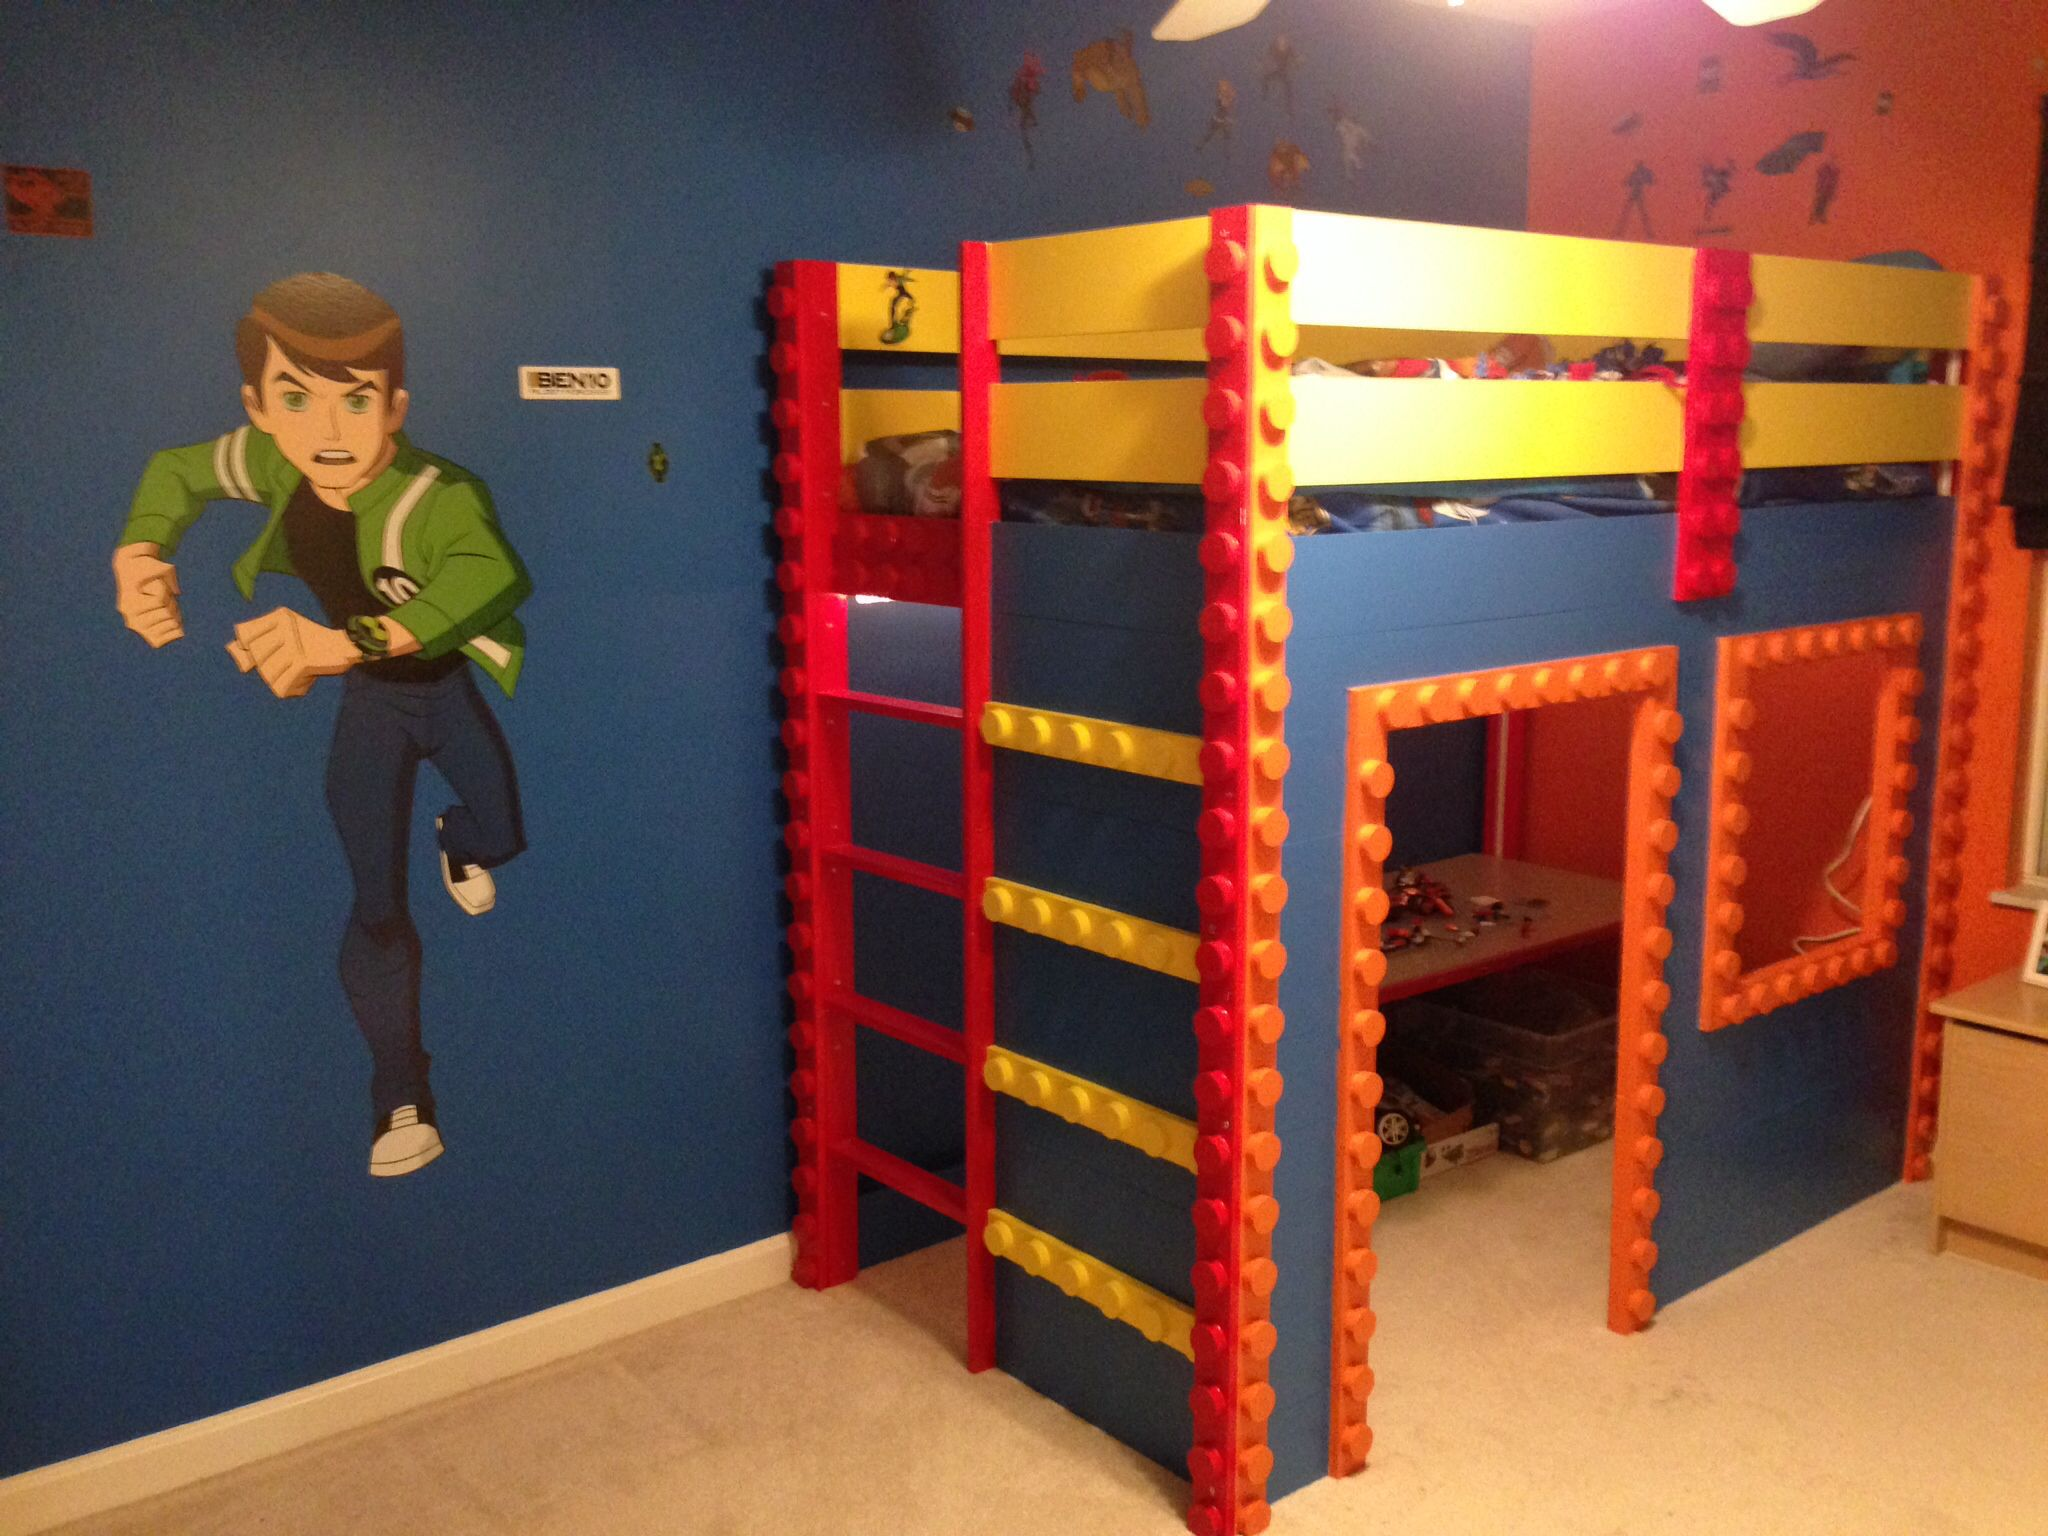 Room 2 Build Bedroom Kids Lego: My Son's Lego Themed Loft Bed I Created!